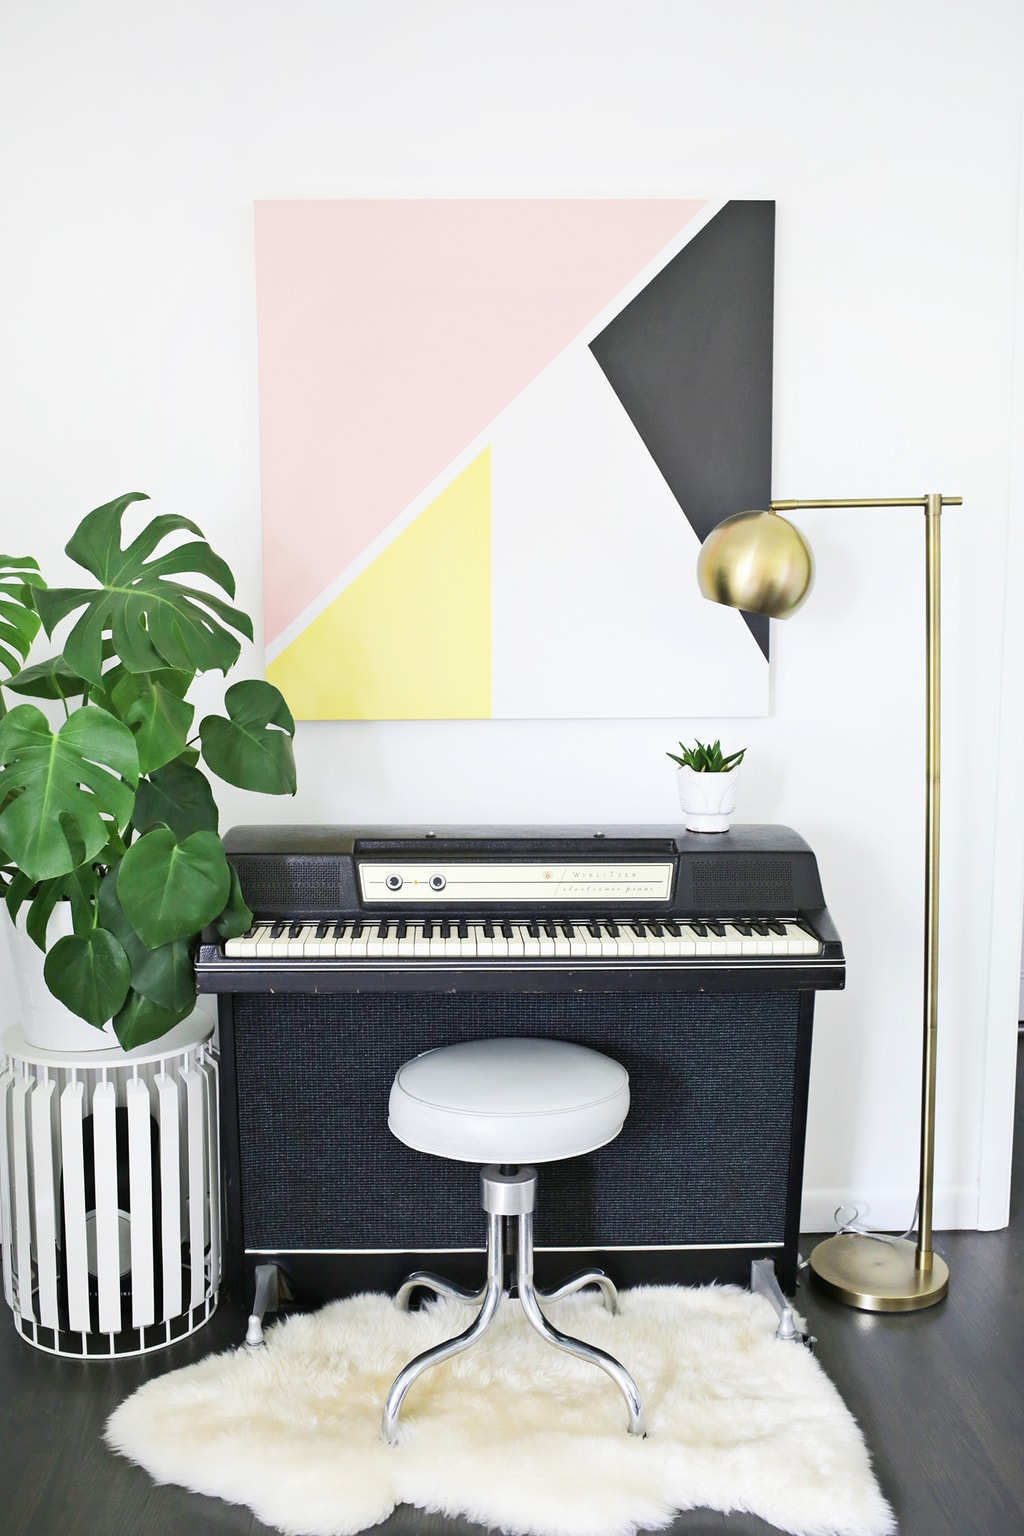 Summer DIY Roundup: 4 Apartment Decor Projects You Can Do Today